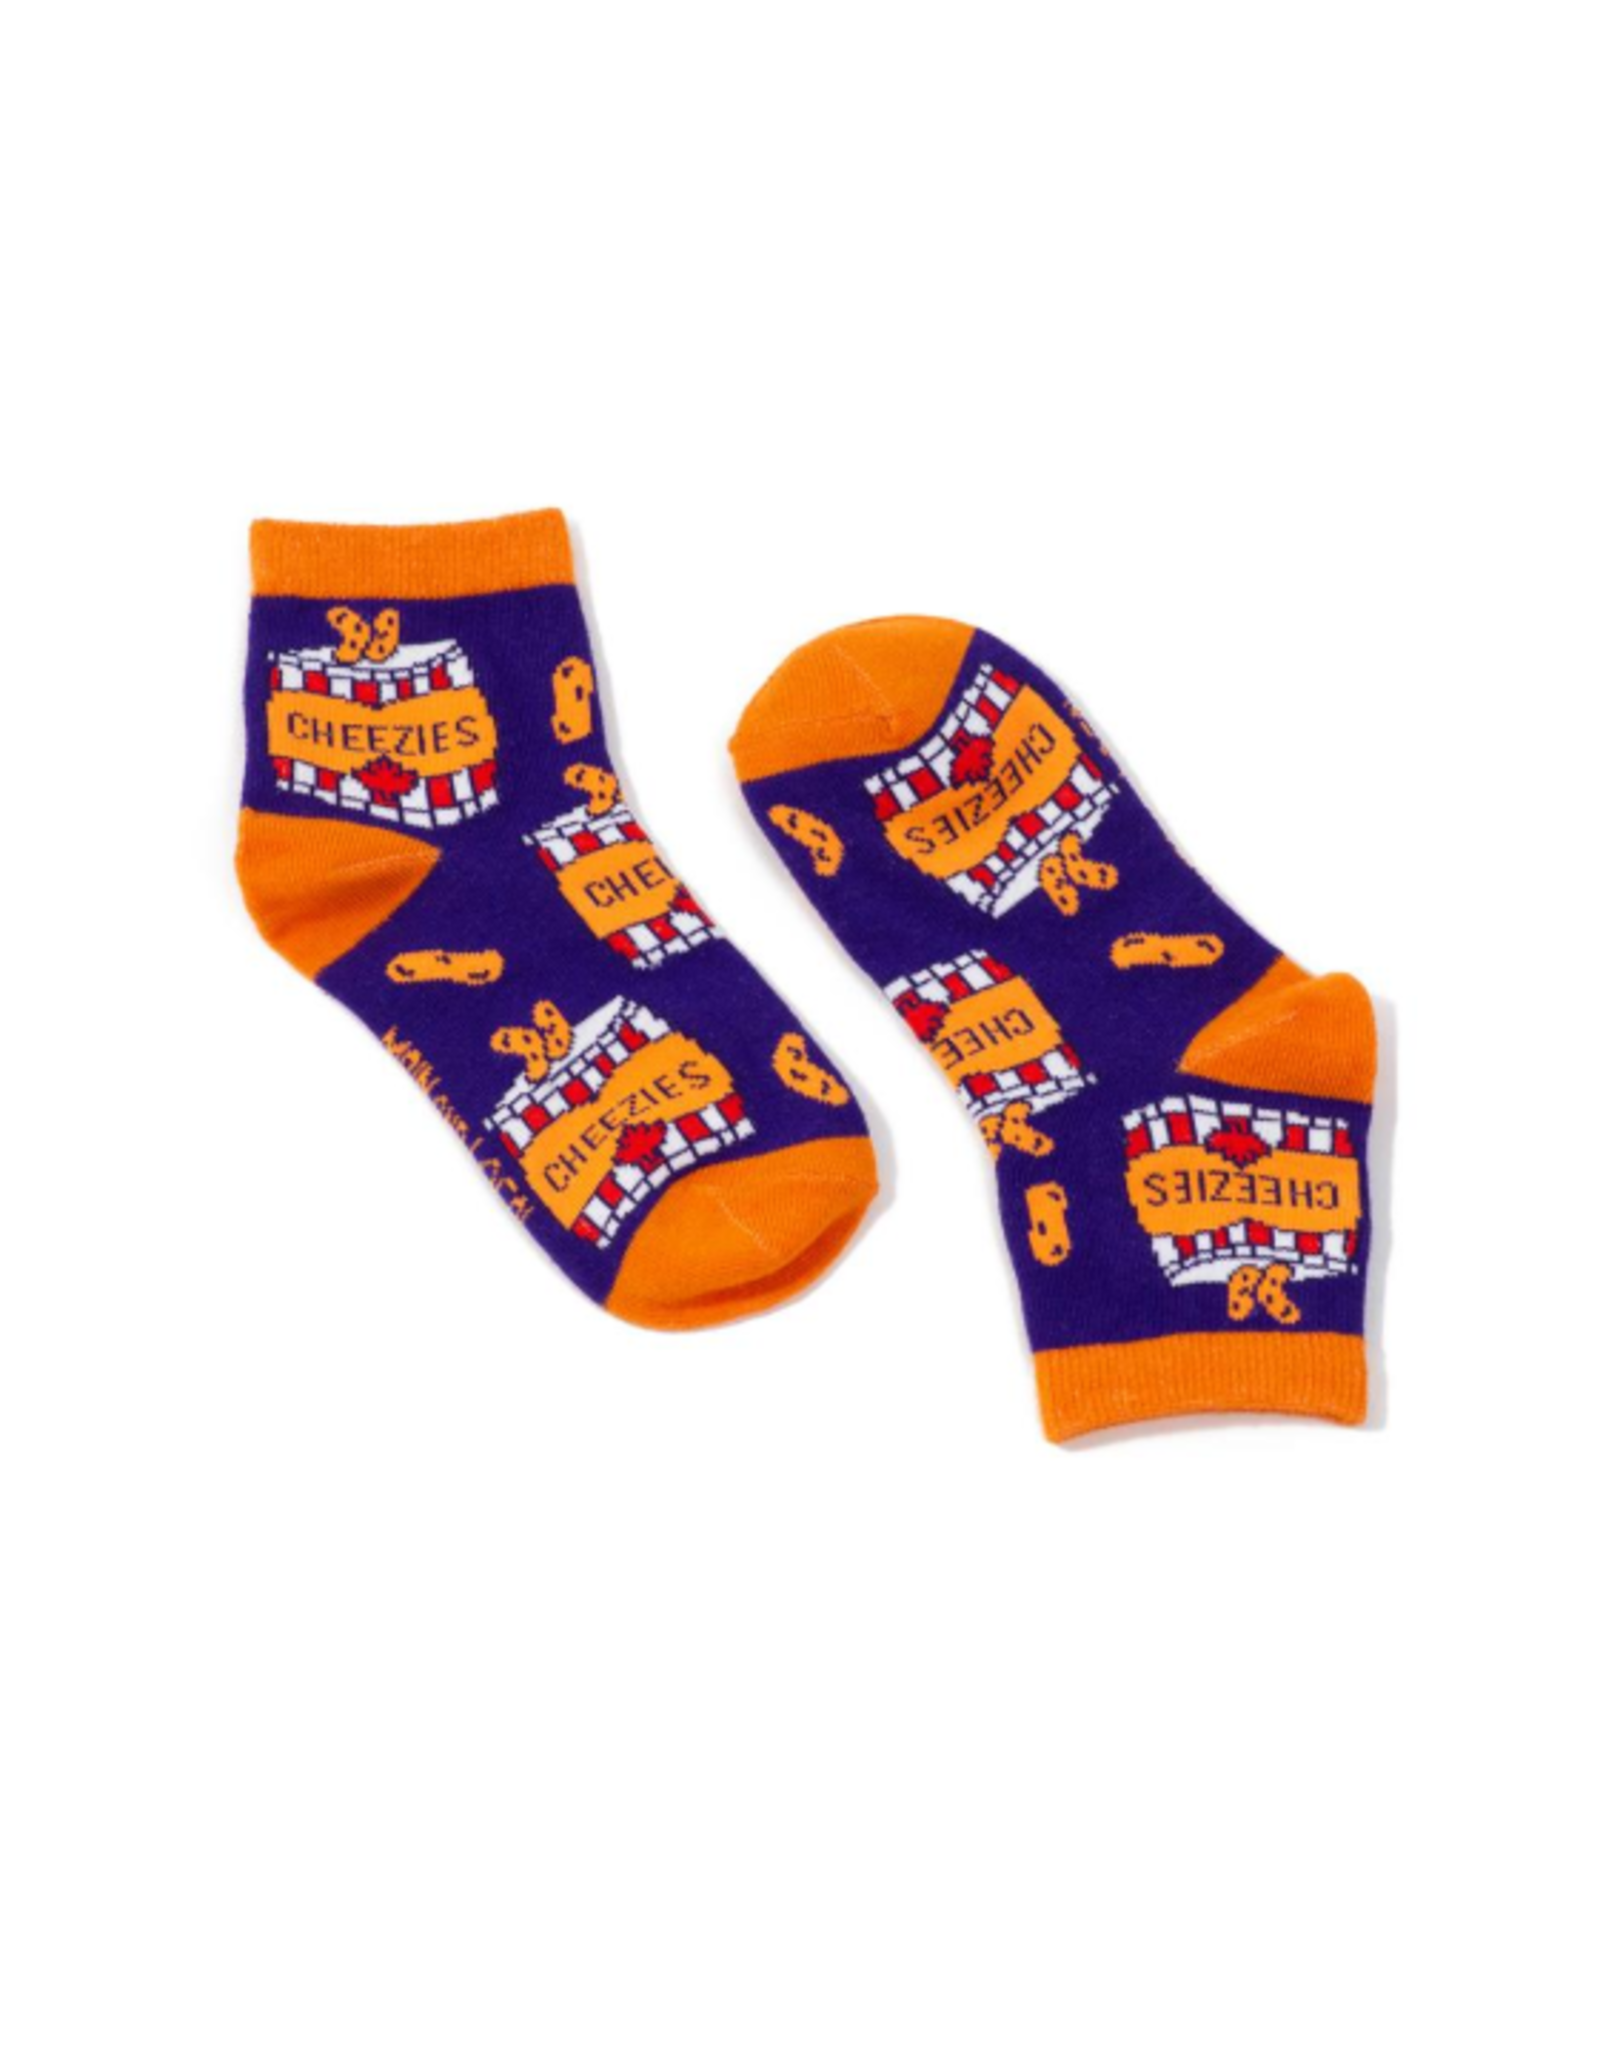 Main & Local Children's Canadian Cheezies Socks